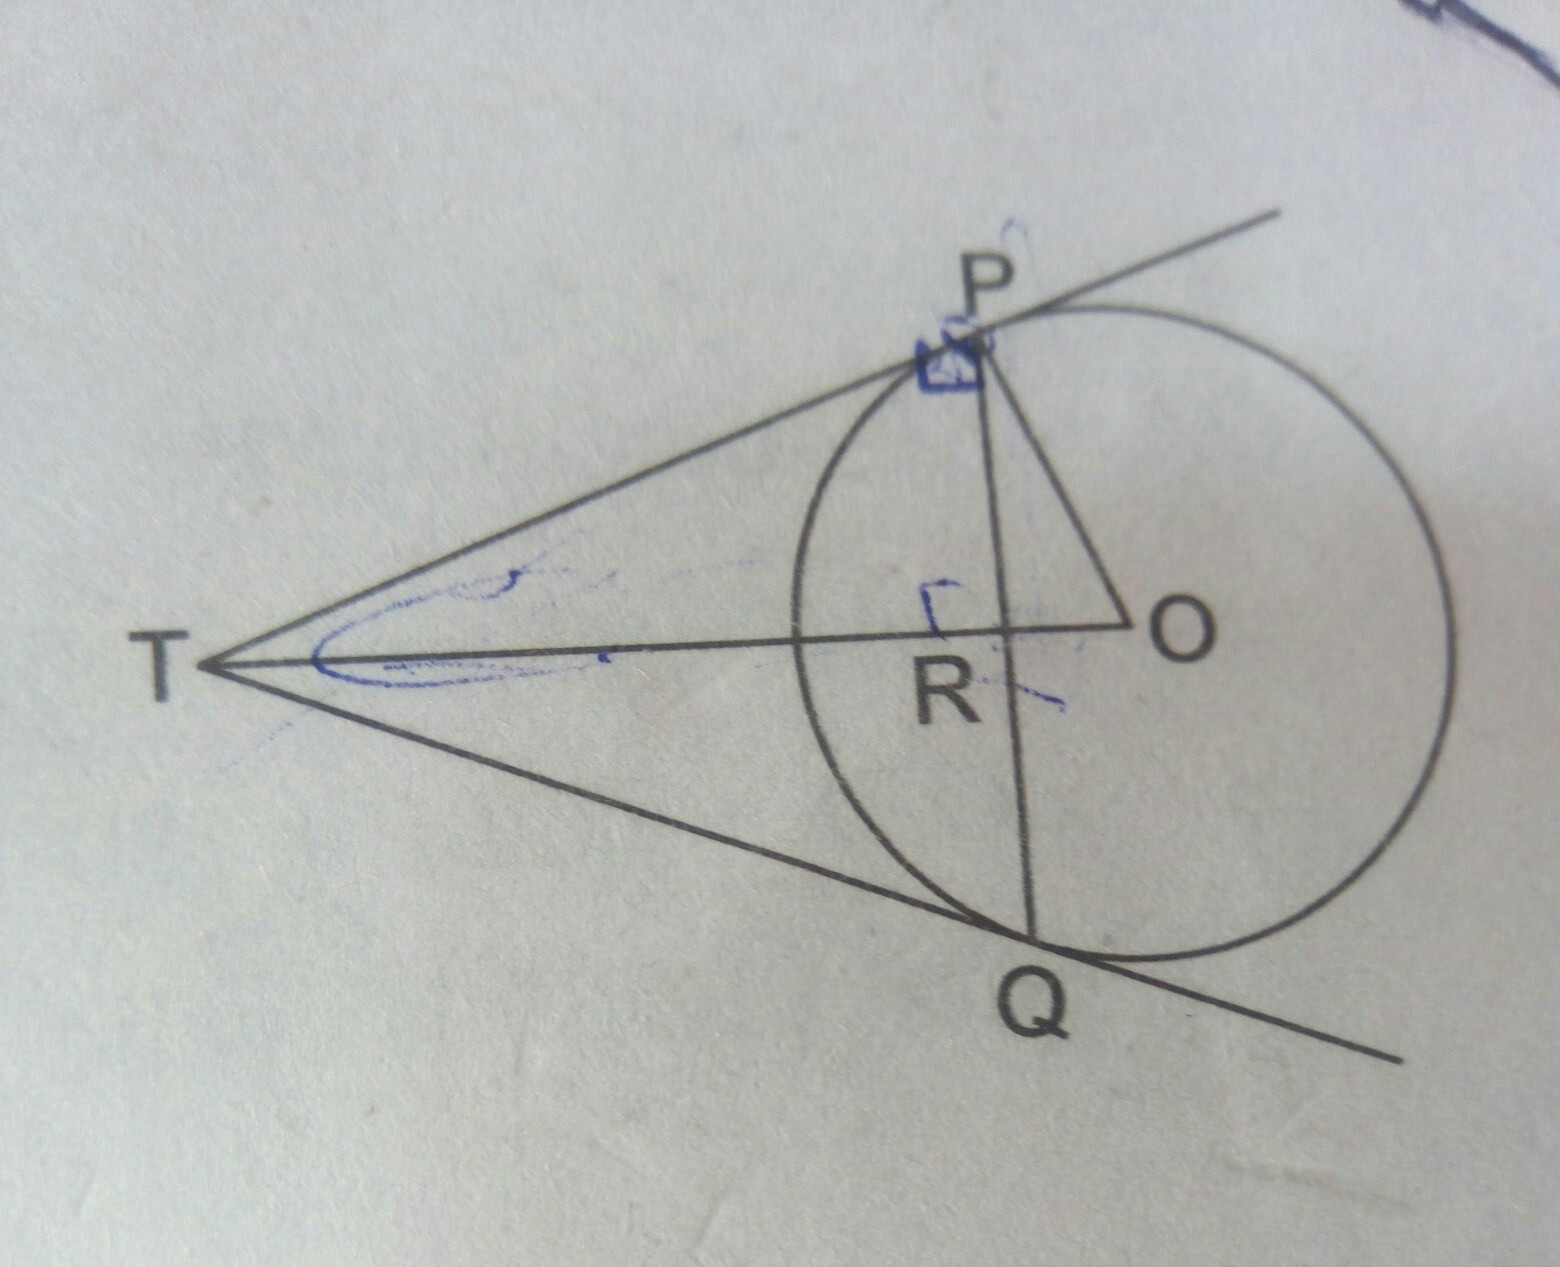 C M Chord Pq Is A Chord Of Length 48 Cm Of A Circle Of Radius 3 Cm T The